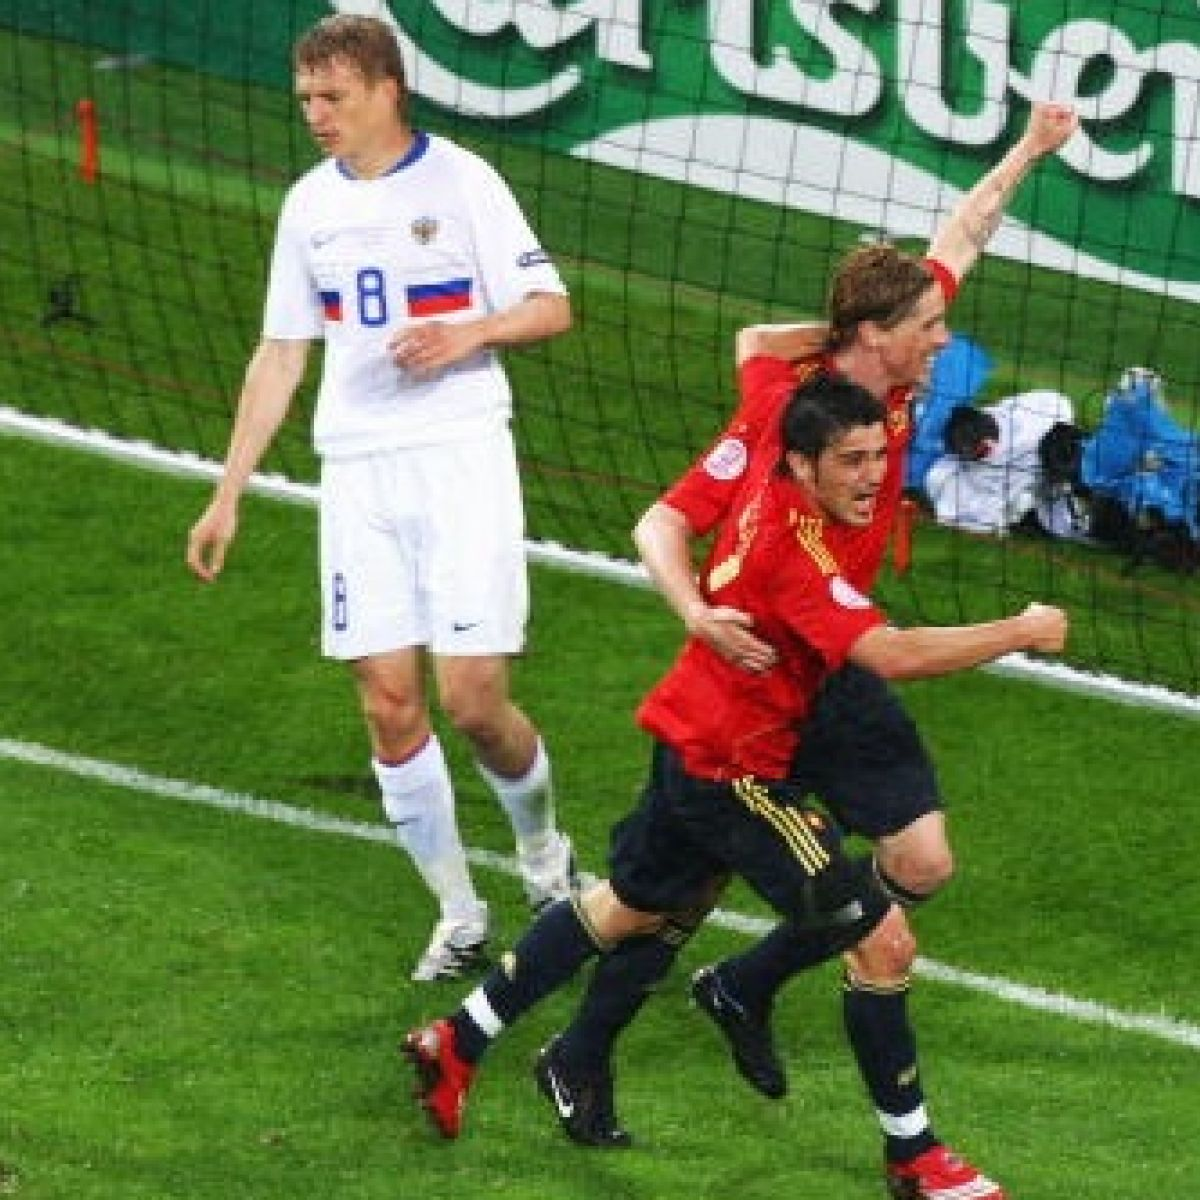 Roman Shirokov announced the end of his playing career